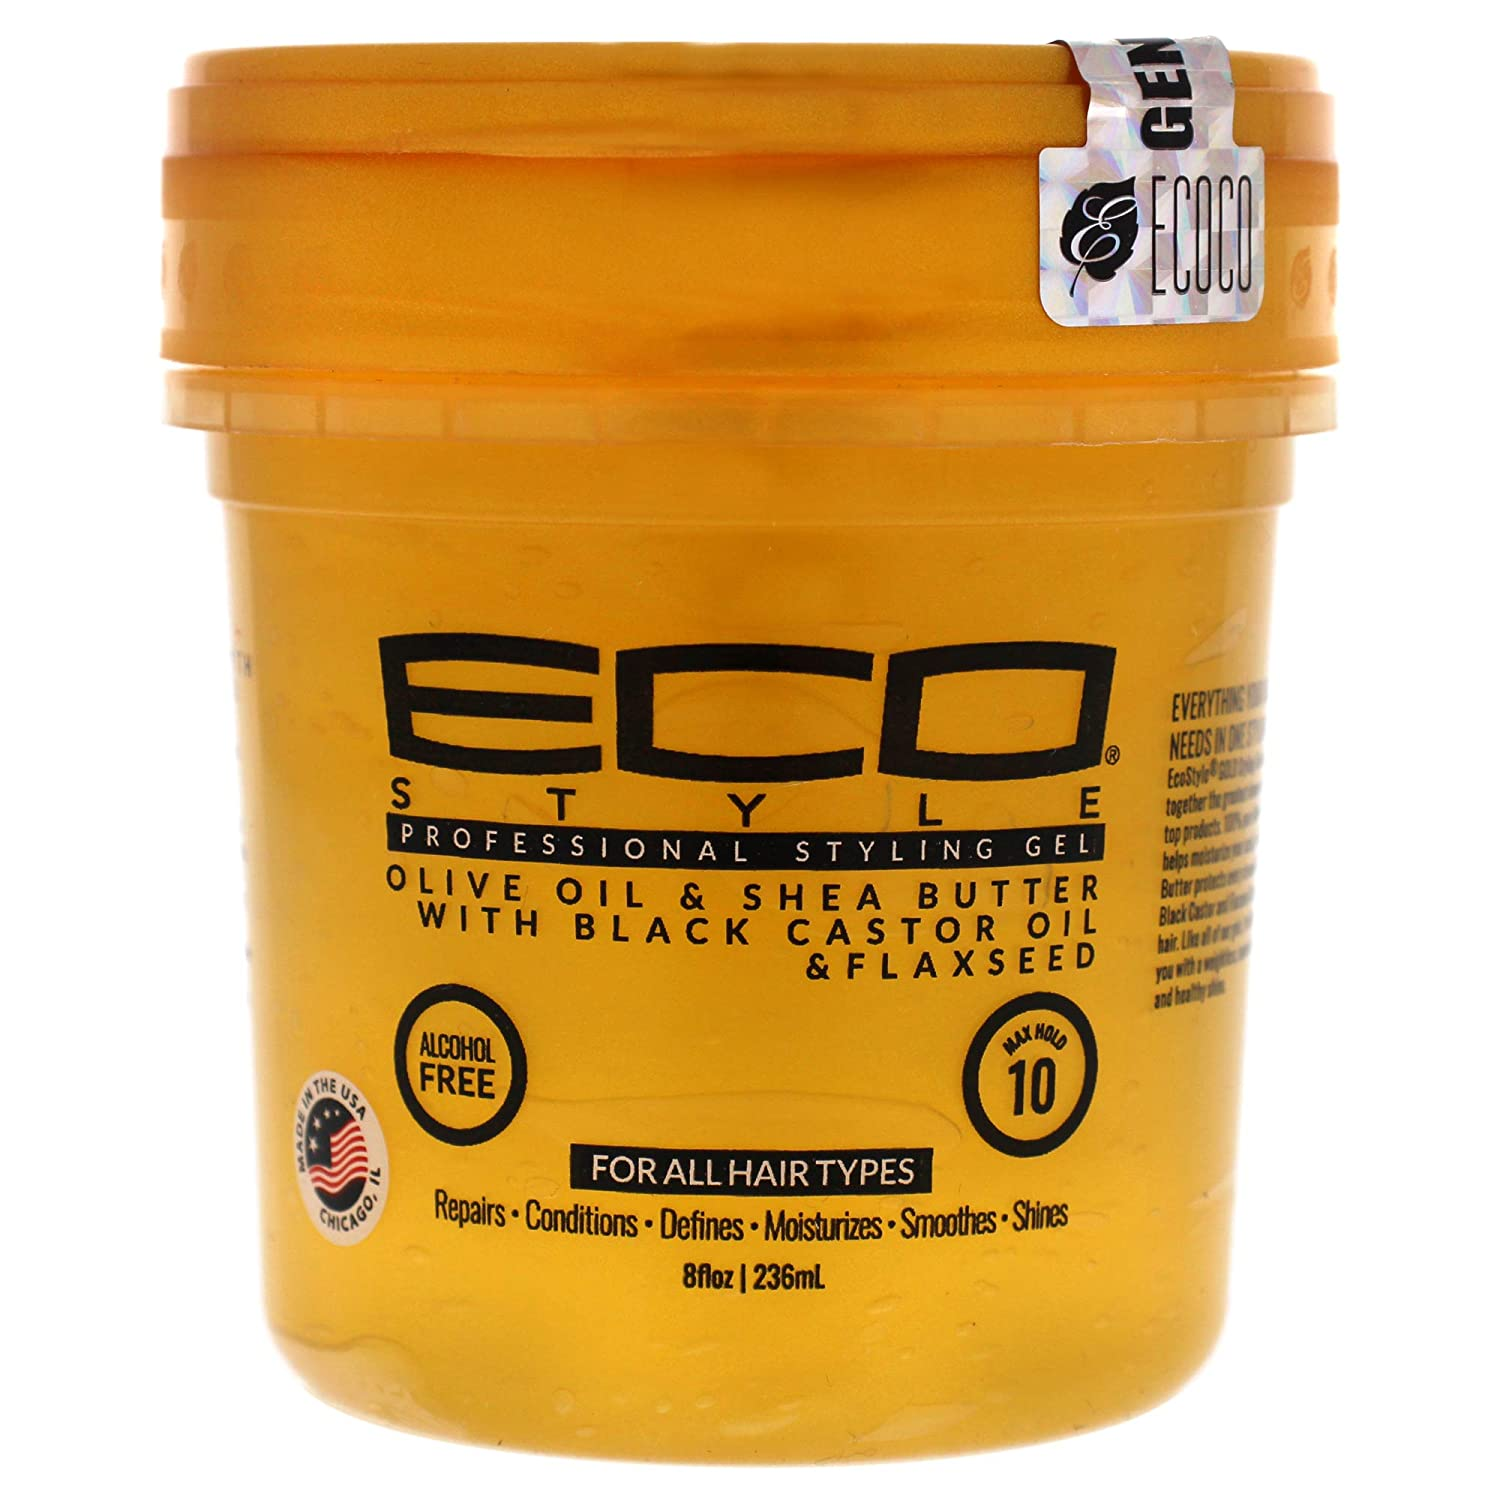 Soldering Eco Style NEW PACK OF Finally popular brand 3 ECO W VERSION GOLD Oliv GEL- STYLING